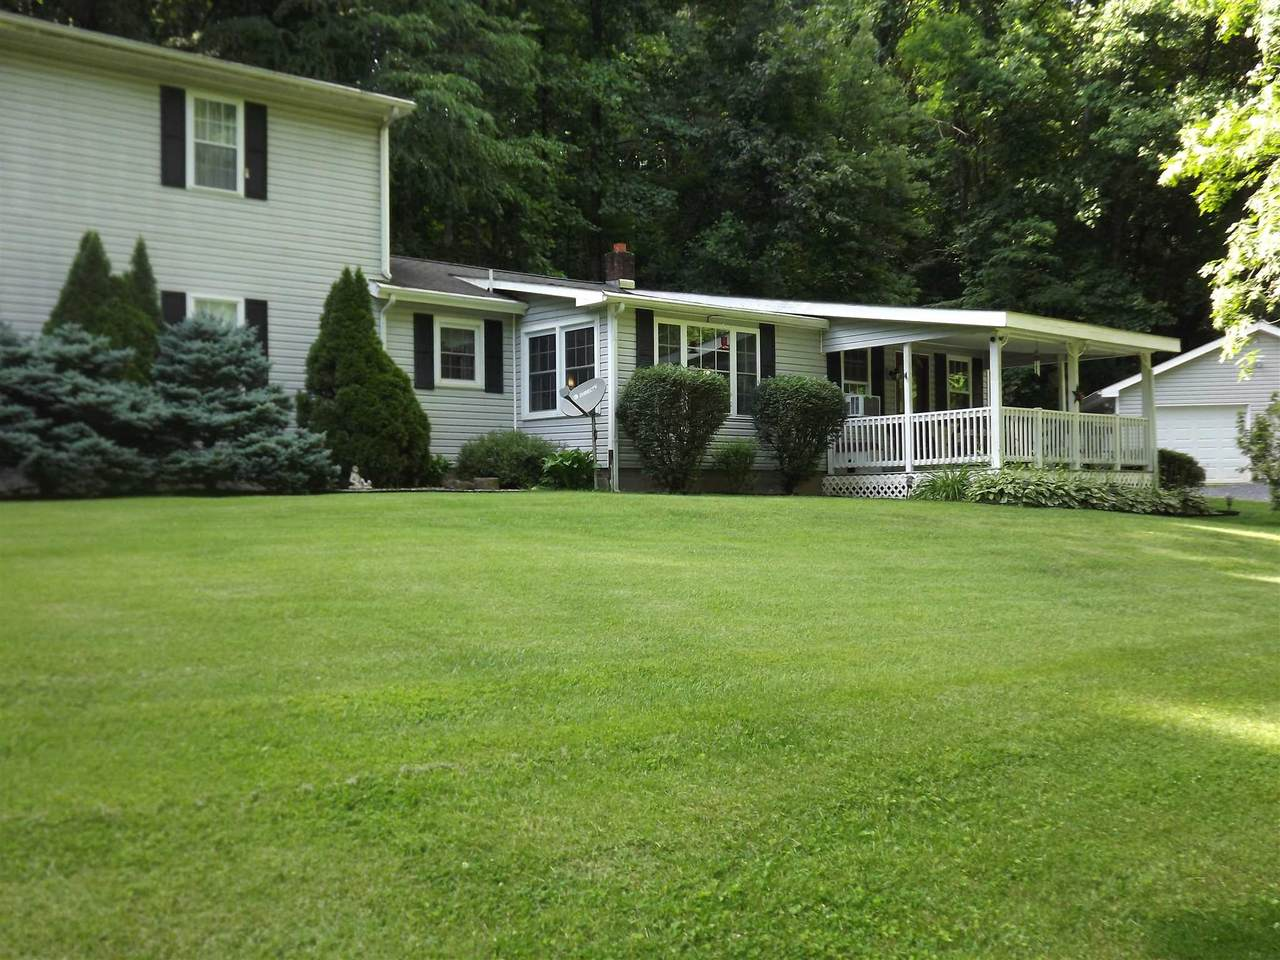 887 Bright Hollow Rd - Photo 1